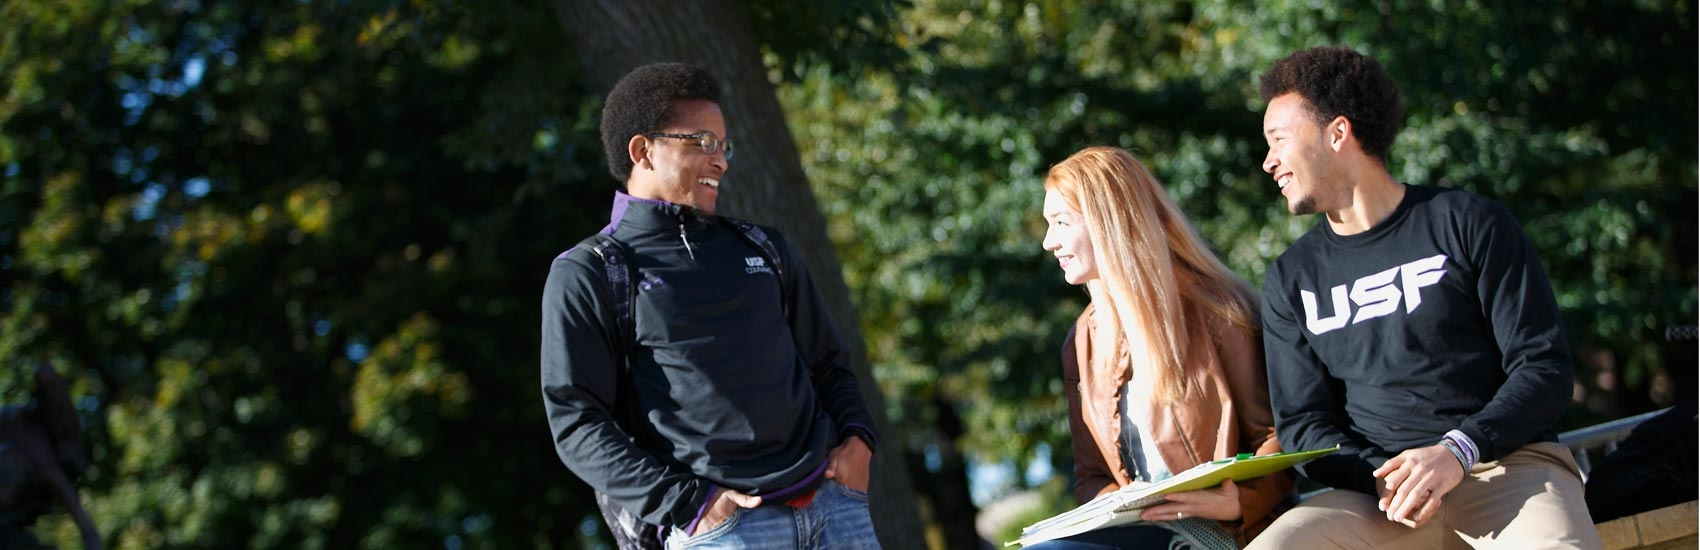 Students talking on USF's campus quad.